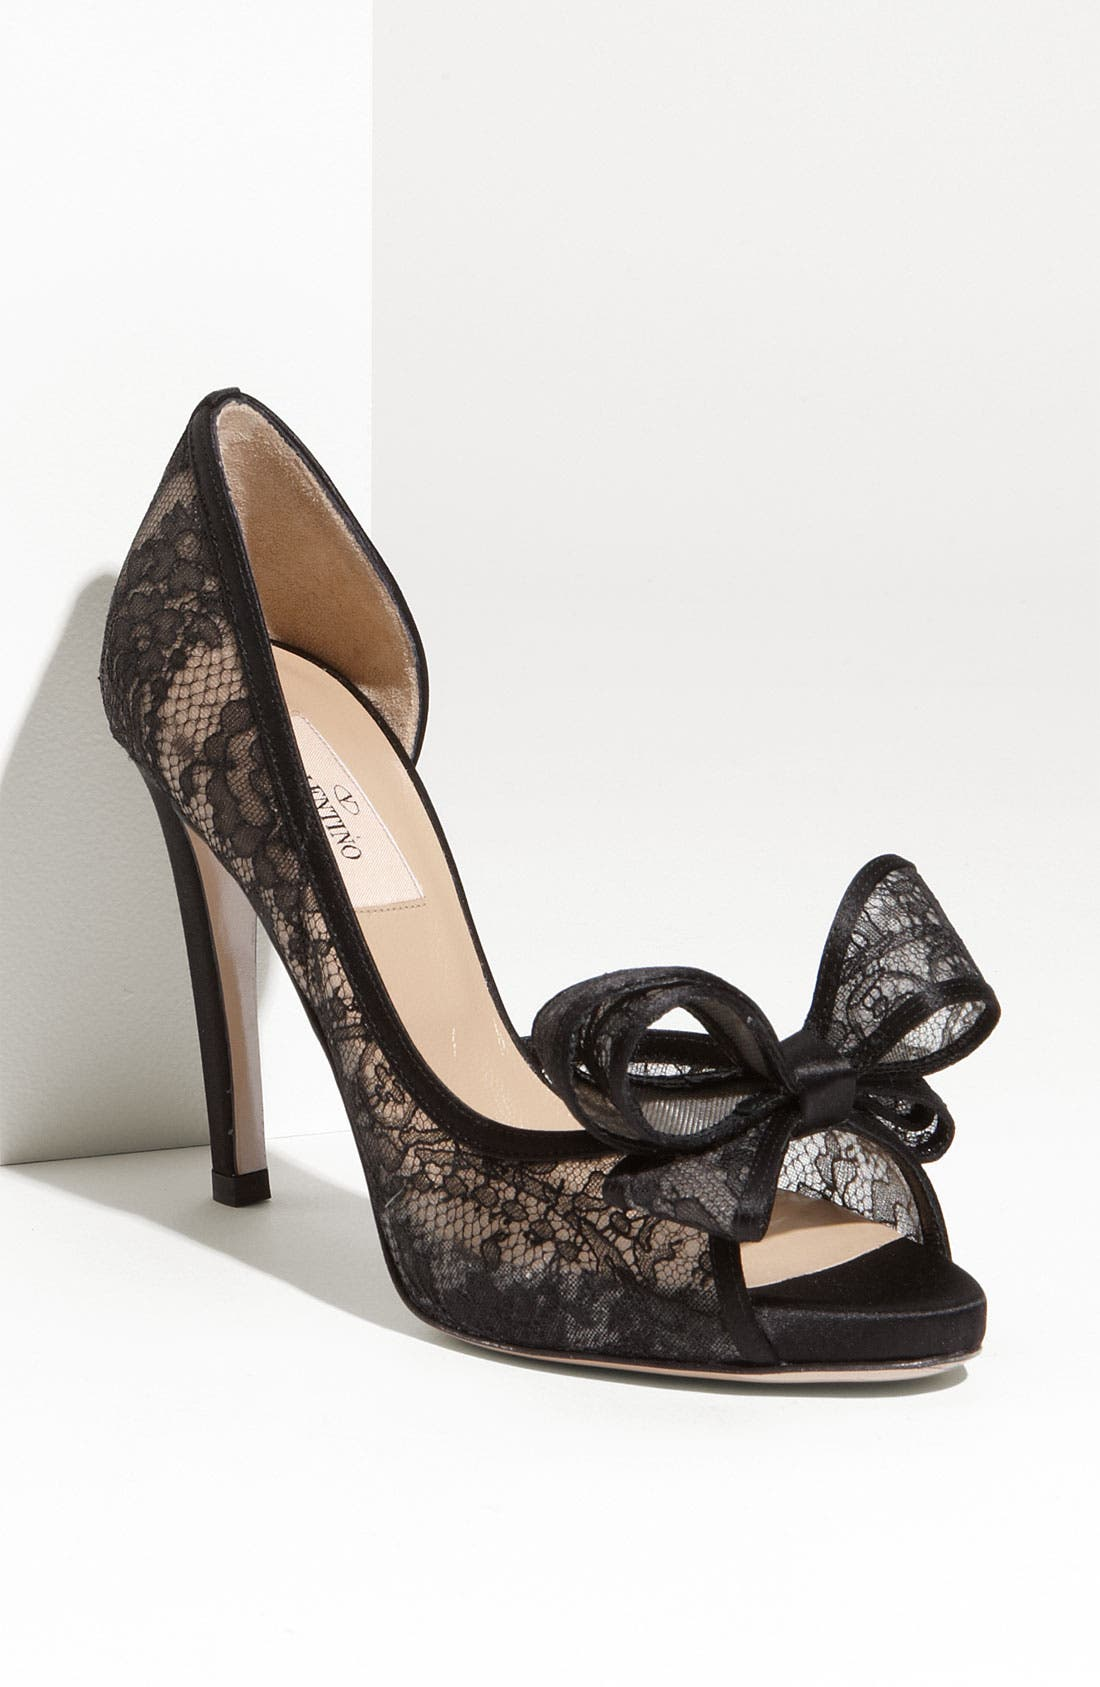 Alternate Image 1 Selected - Valentino Lace Couture Bow d'Orsay Pump